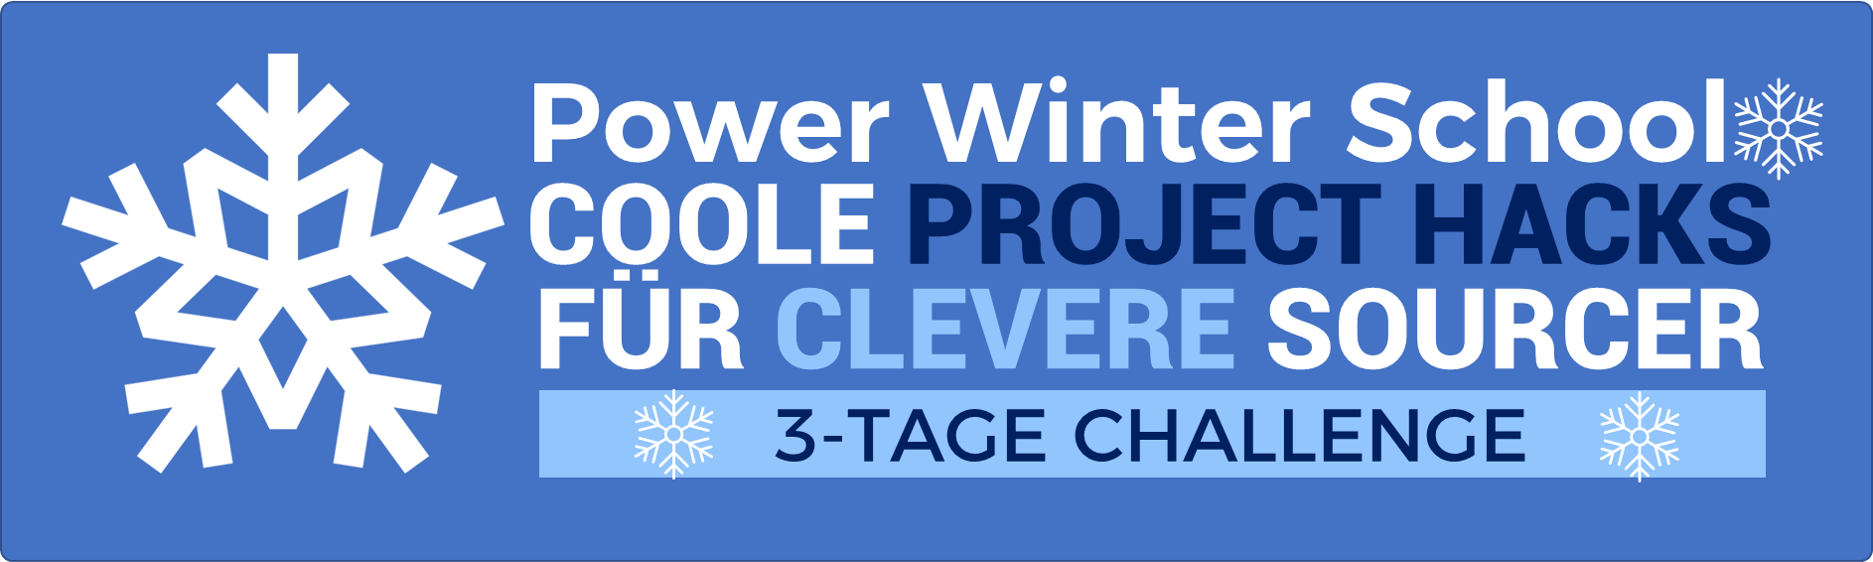 Coole Project Hacks für Clevere Sourcer - Power Winter School 2021